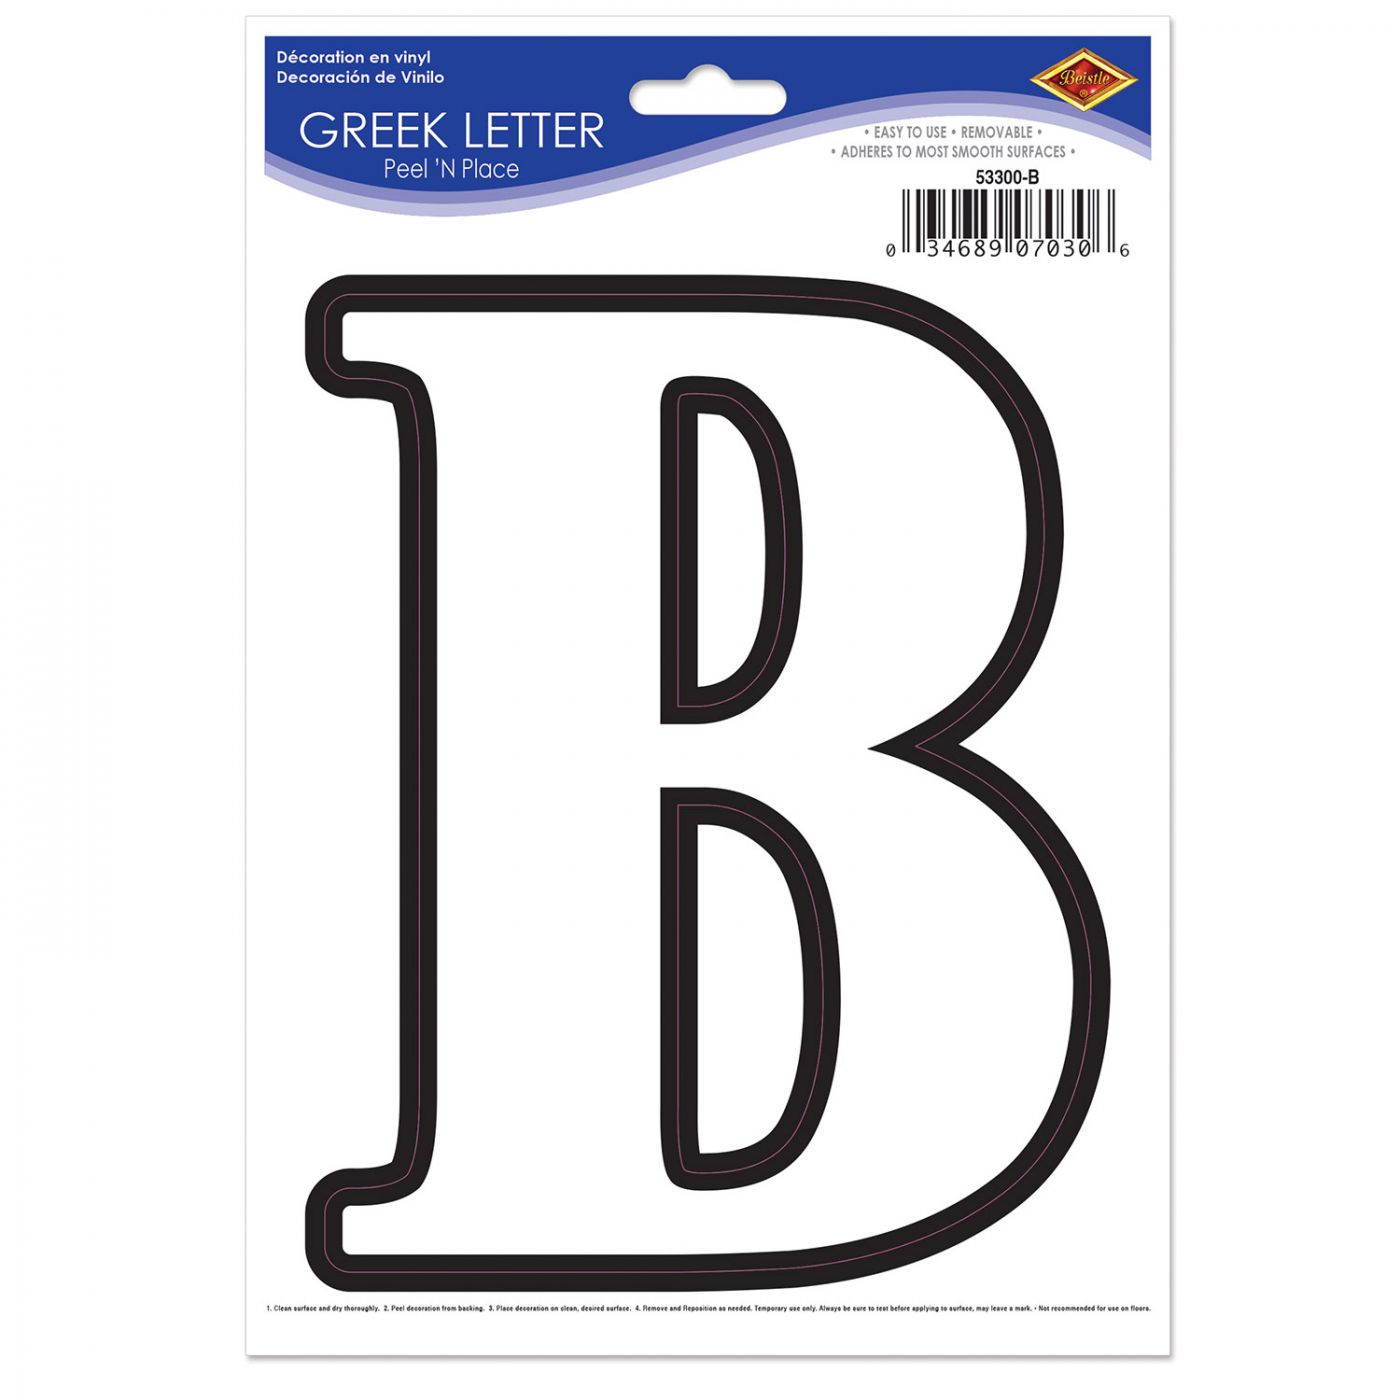 Image of Greek Letter Peel 'N Place